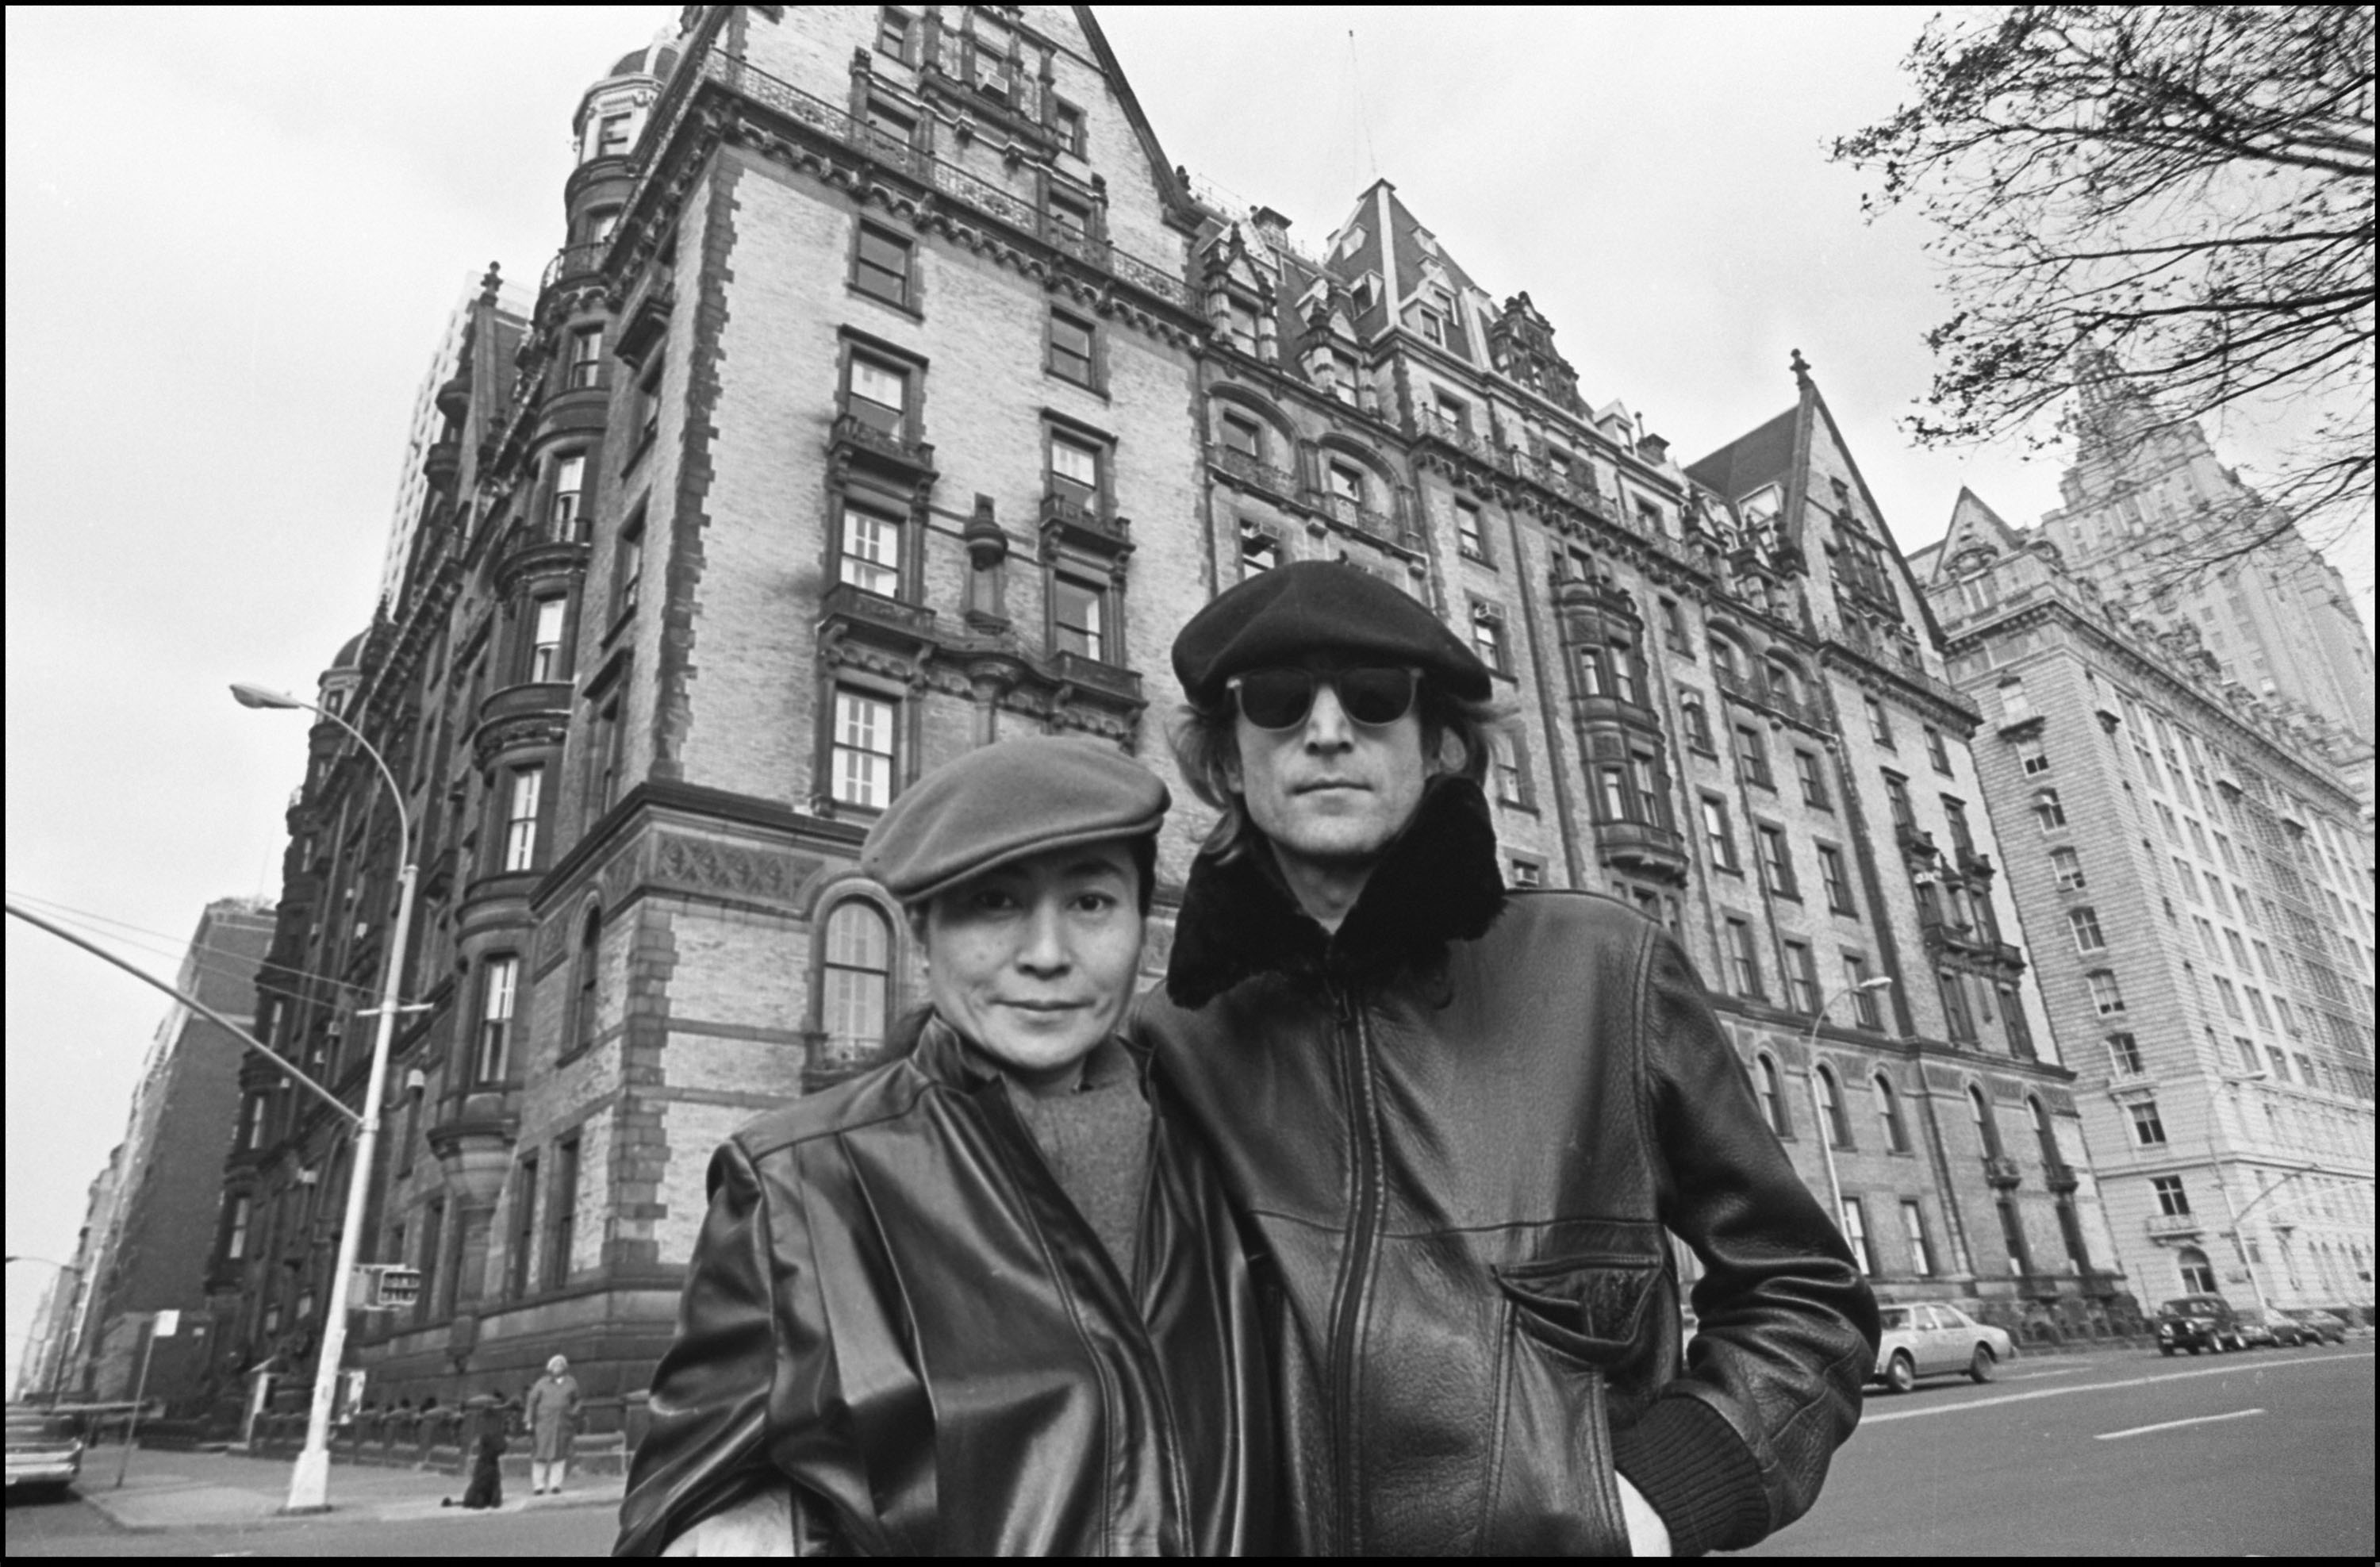 John Lennon and Yoko Ono come out of 5 years' seclusion to promote their new album, Double Fantasy, November 21, 1980. They walked around Central Park, posed infront of the Dakota apartment house, and worked in Studio One, Yoko's office. ©Allan Tannenbaum